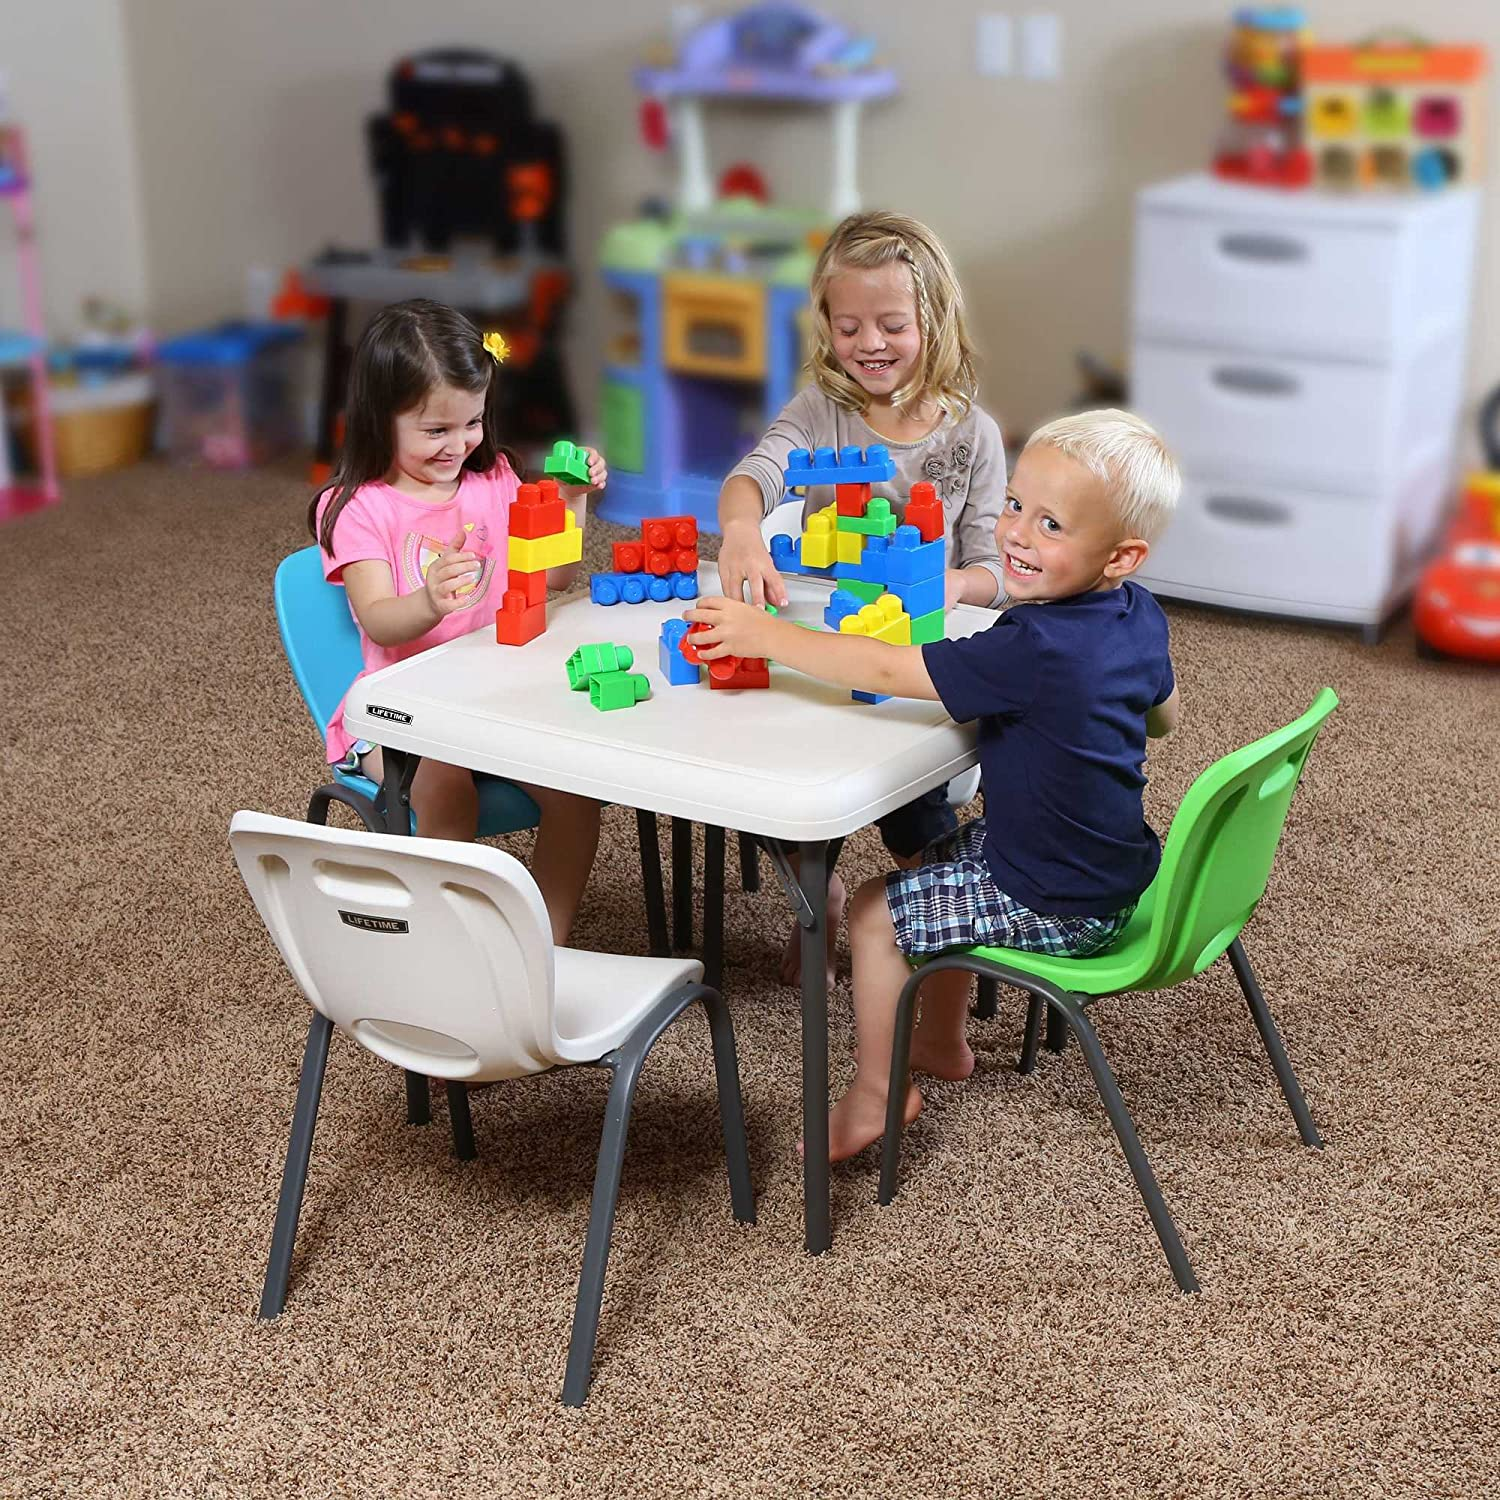 Amazon.com: Lifetime 80425 Kids Folding Table, Almond, 24\u201d: Garden ...